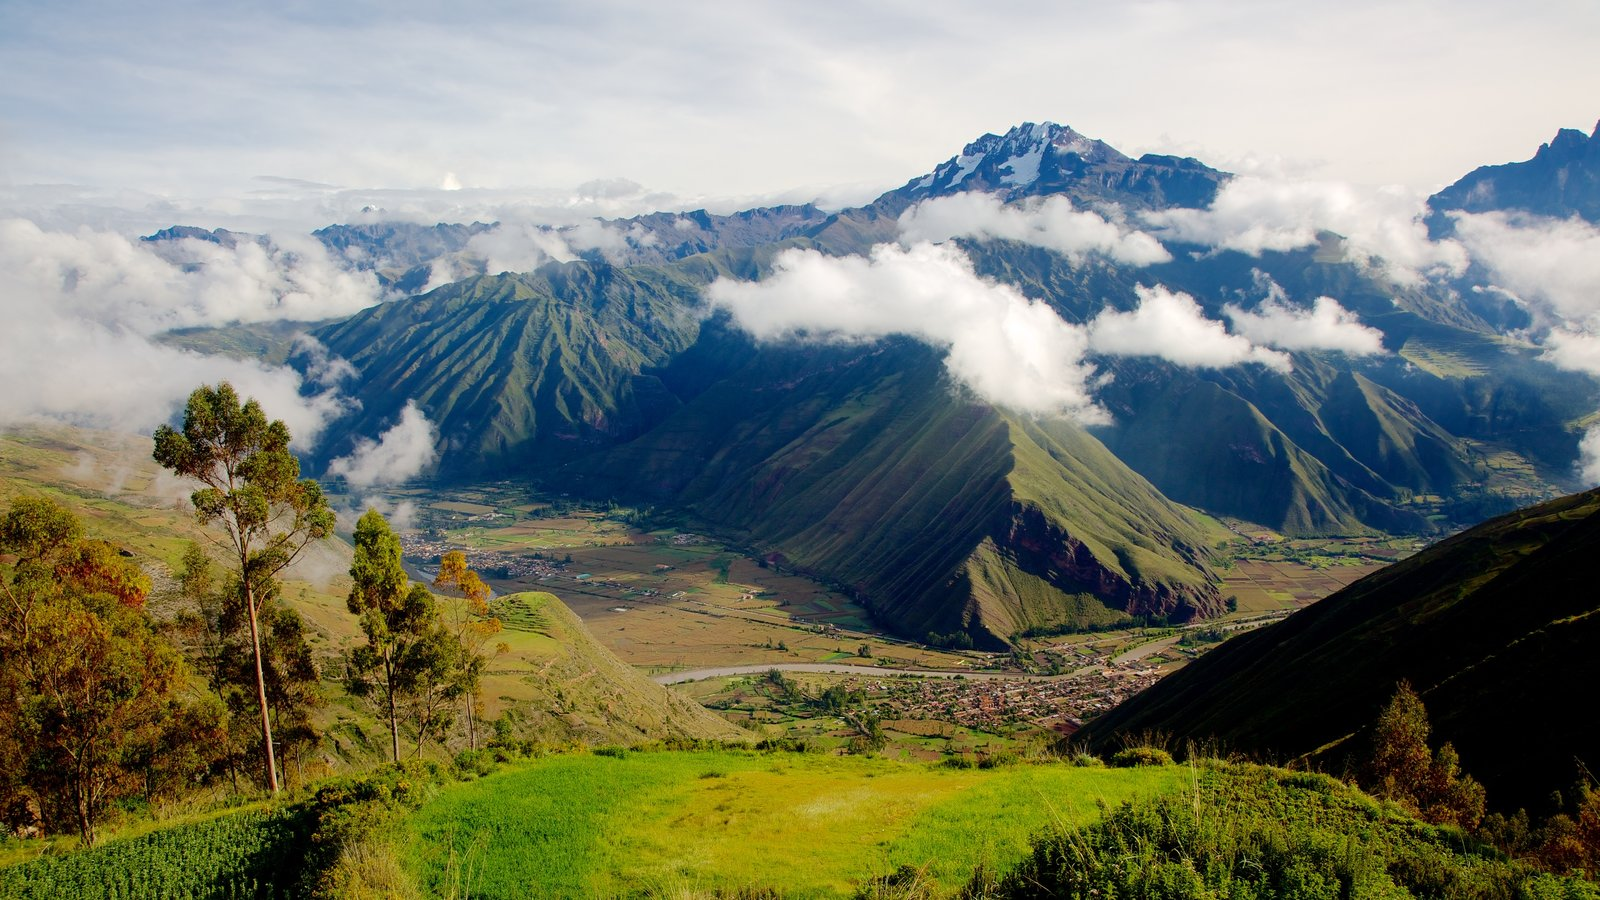 Urubamba featuring tranquil scenes, landscape views and mountains